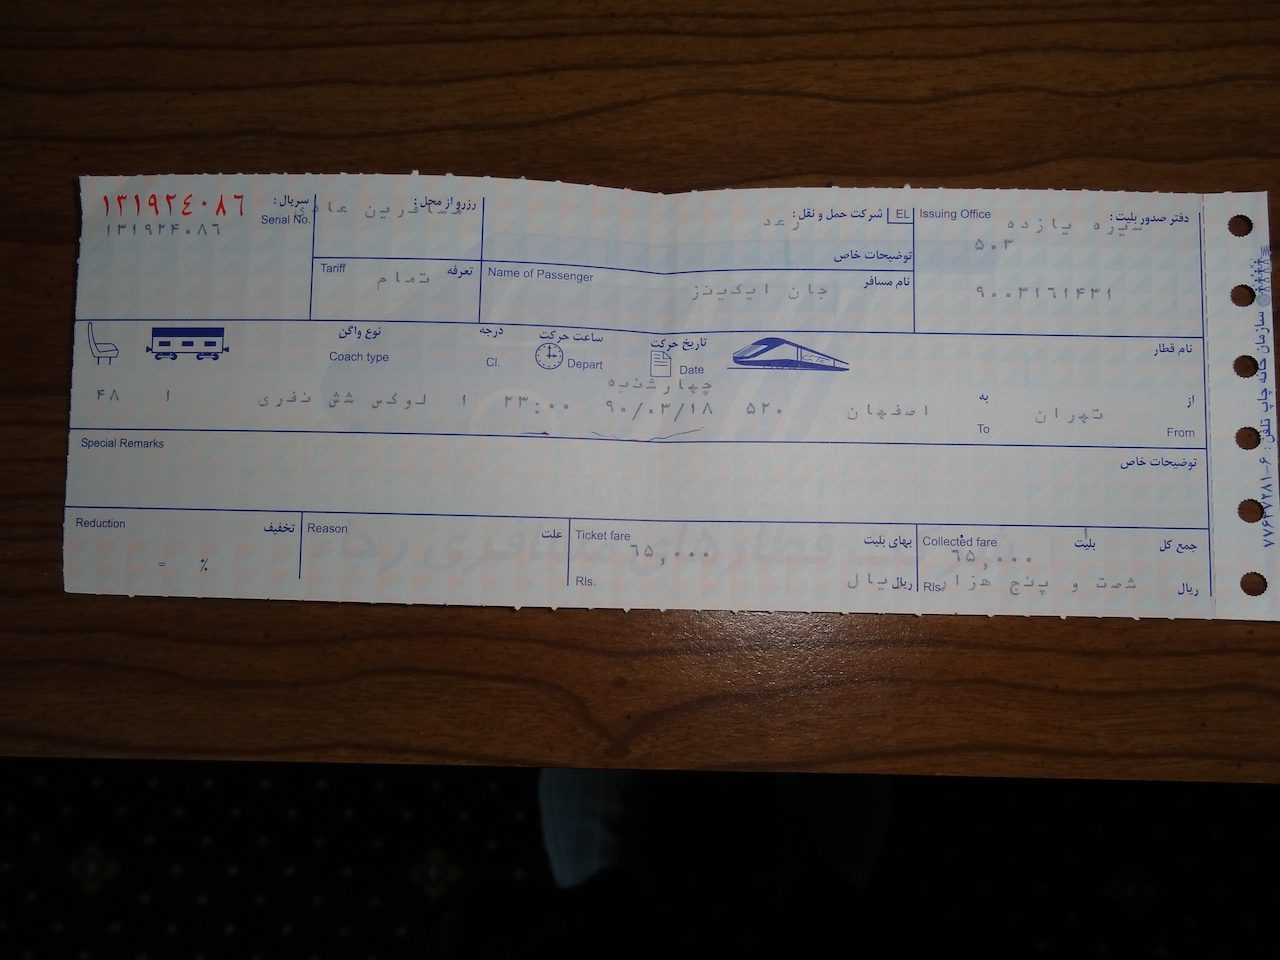 Railway ticket to Esfahan